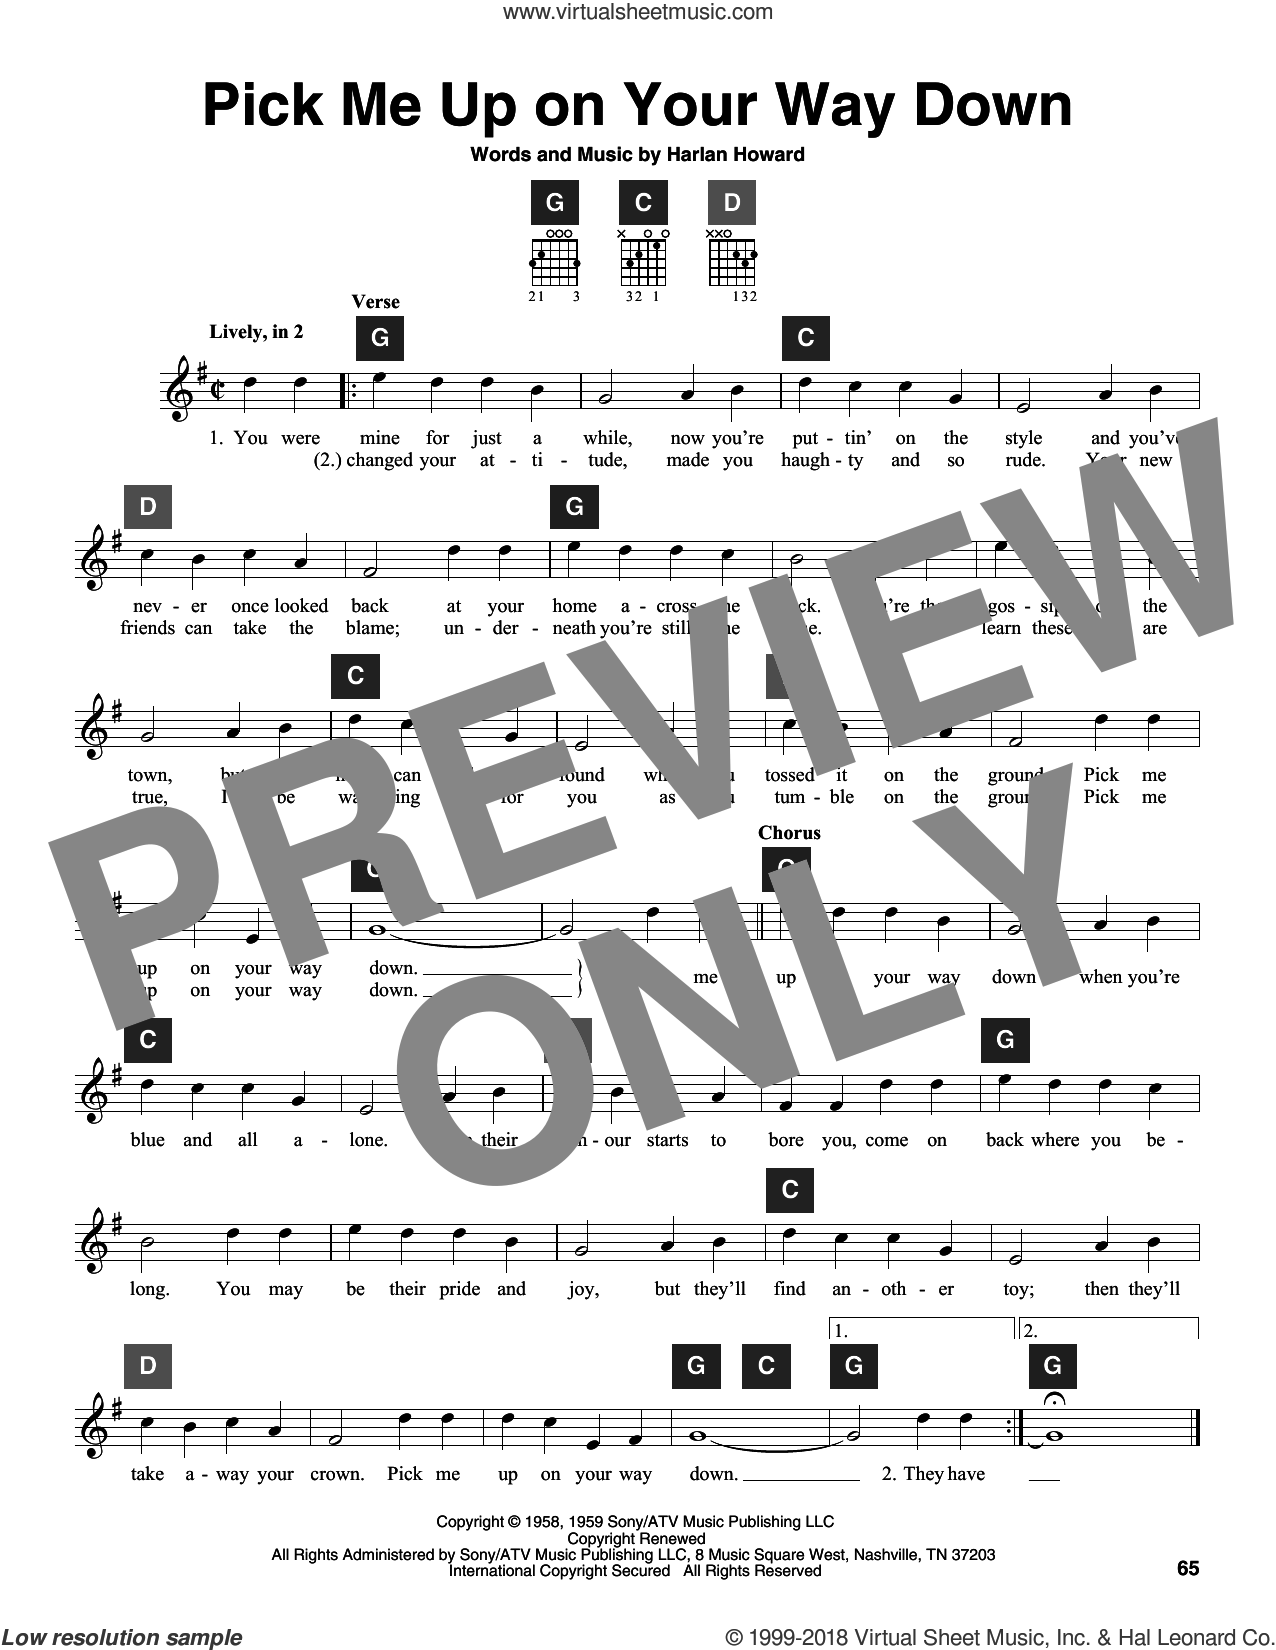 Pick Me Up On Your Way Down sheet music for guitar solo (ChordBuddy system) by Charlie Walker, Travis Perry and Harlan Howard, intermediate guitar (ChordBuddy system)